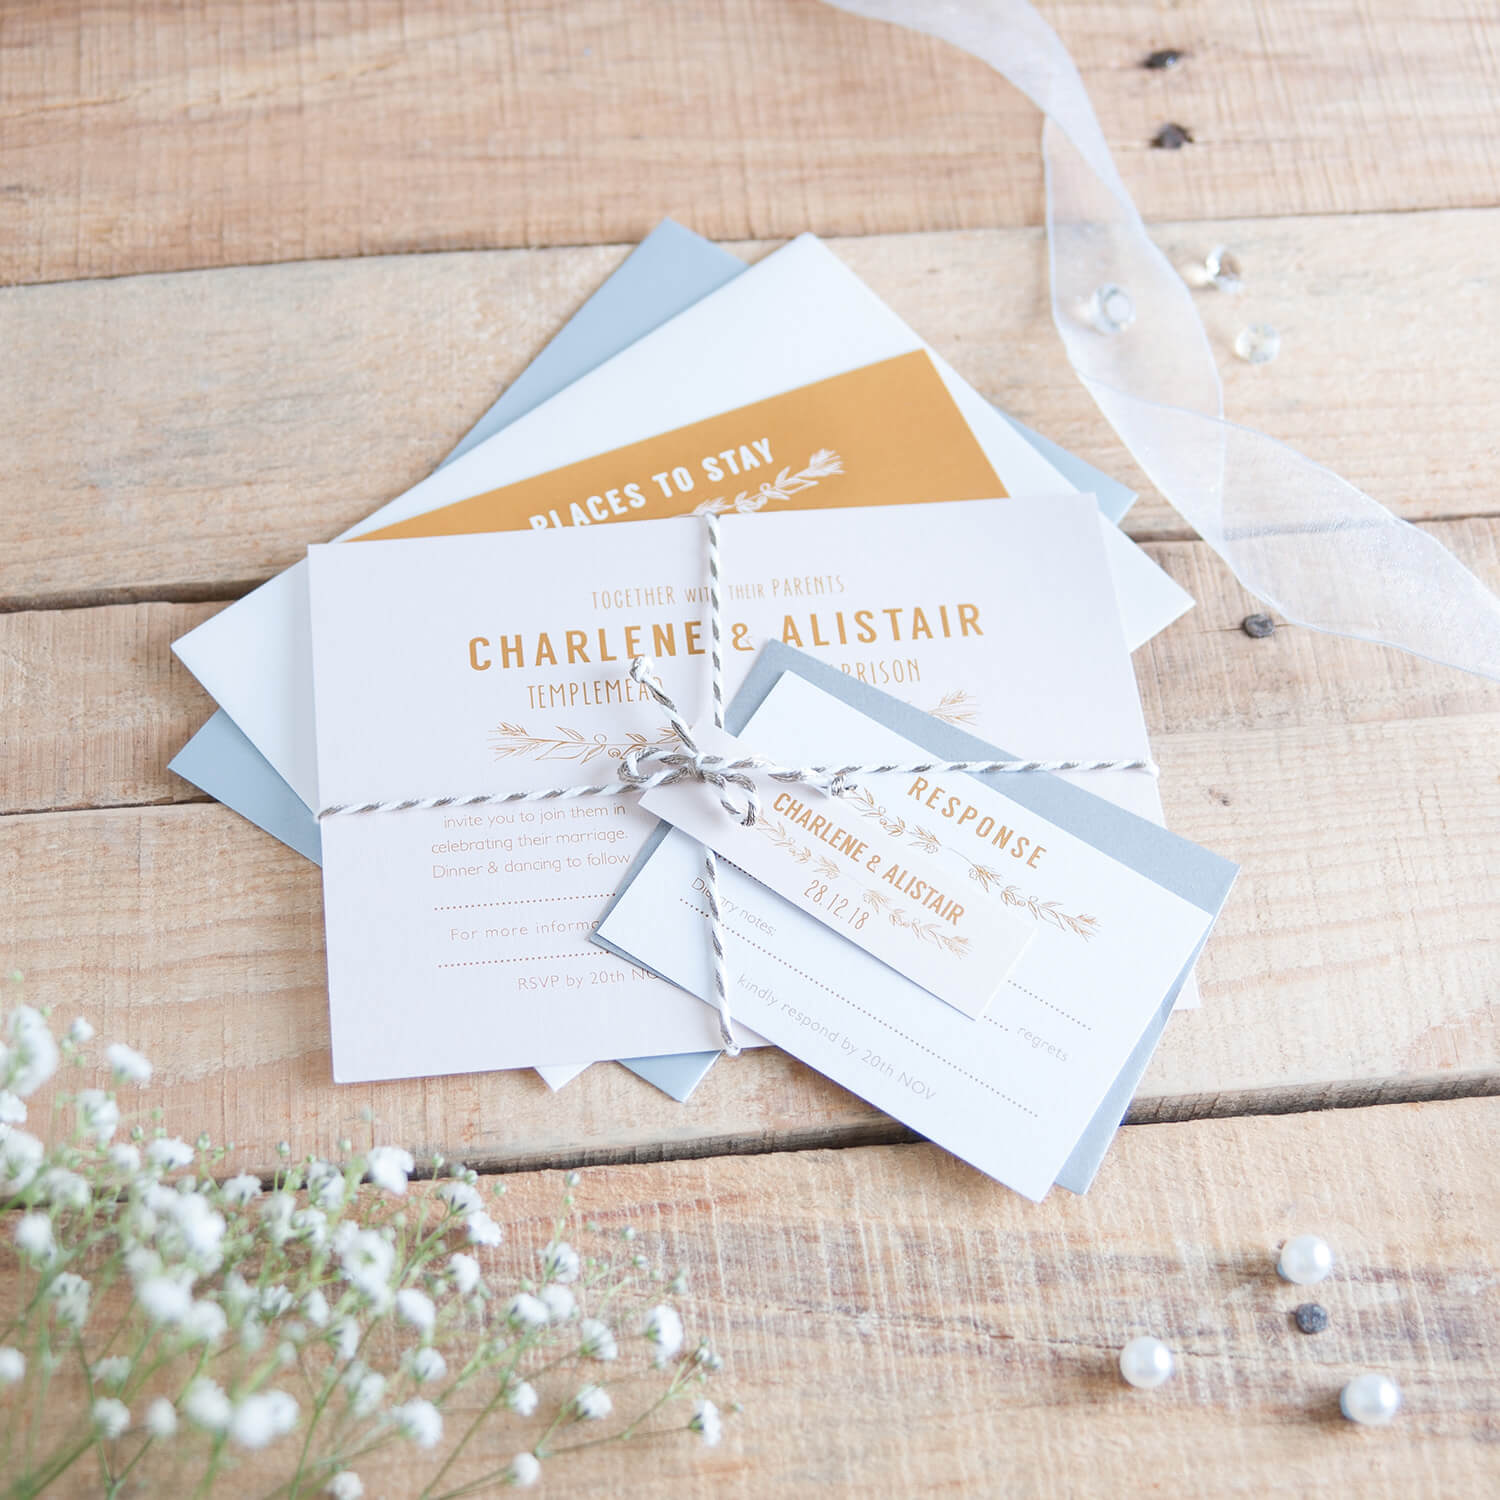 Wedding stationery invitations photographed on old wooden textured planks